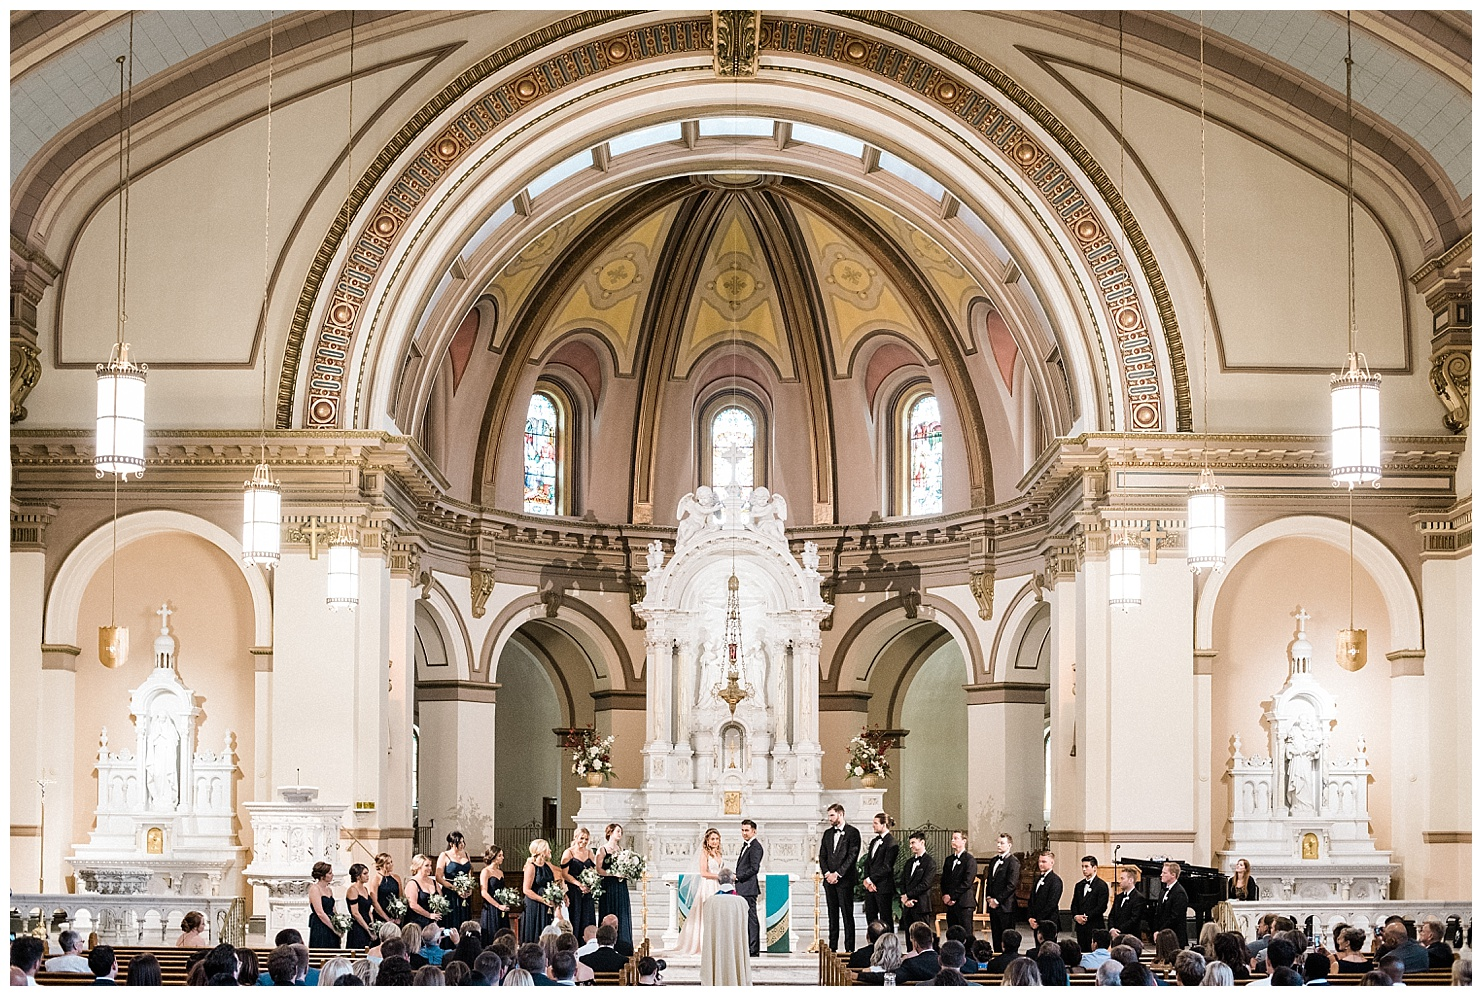 Photo of a wedding ceremony in St. Aloyius Cathedral by Forthright Photo